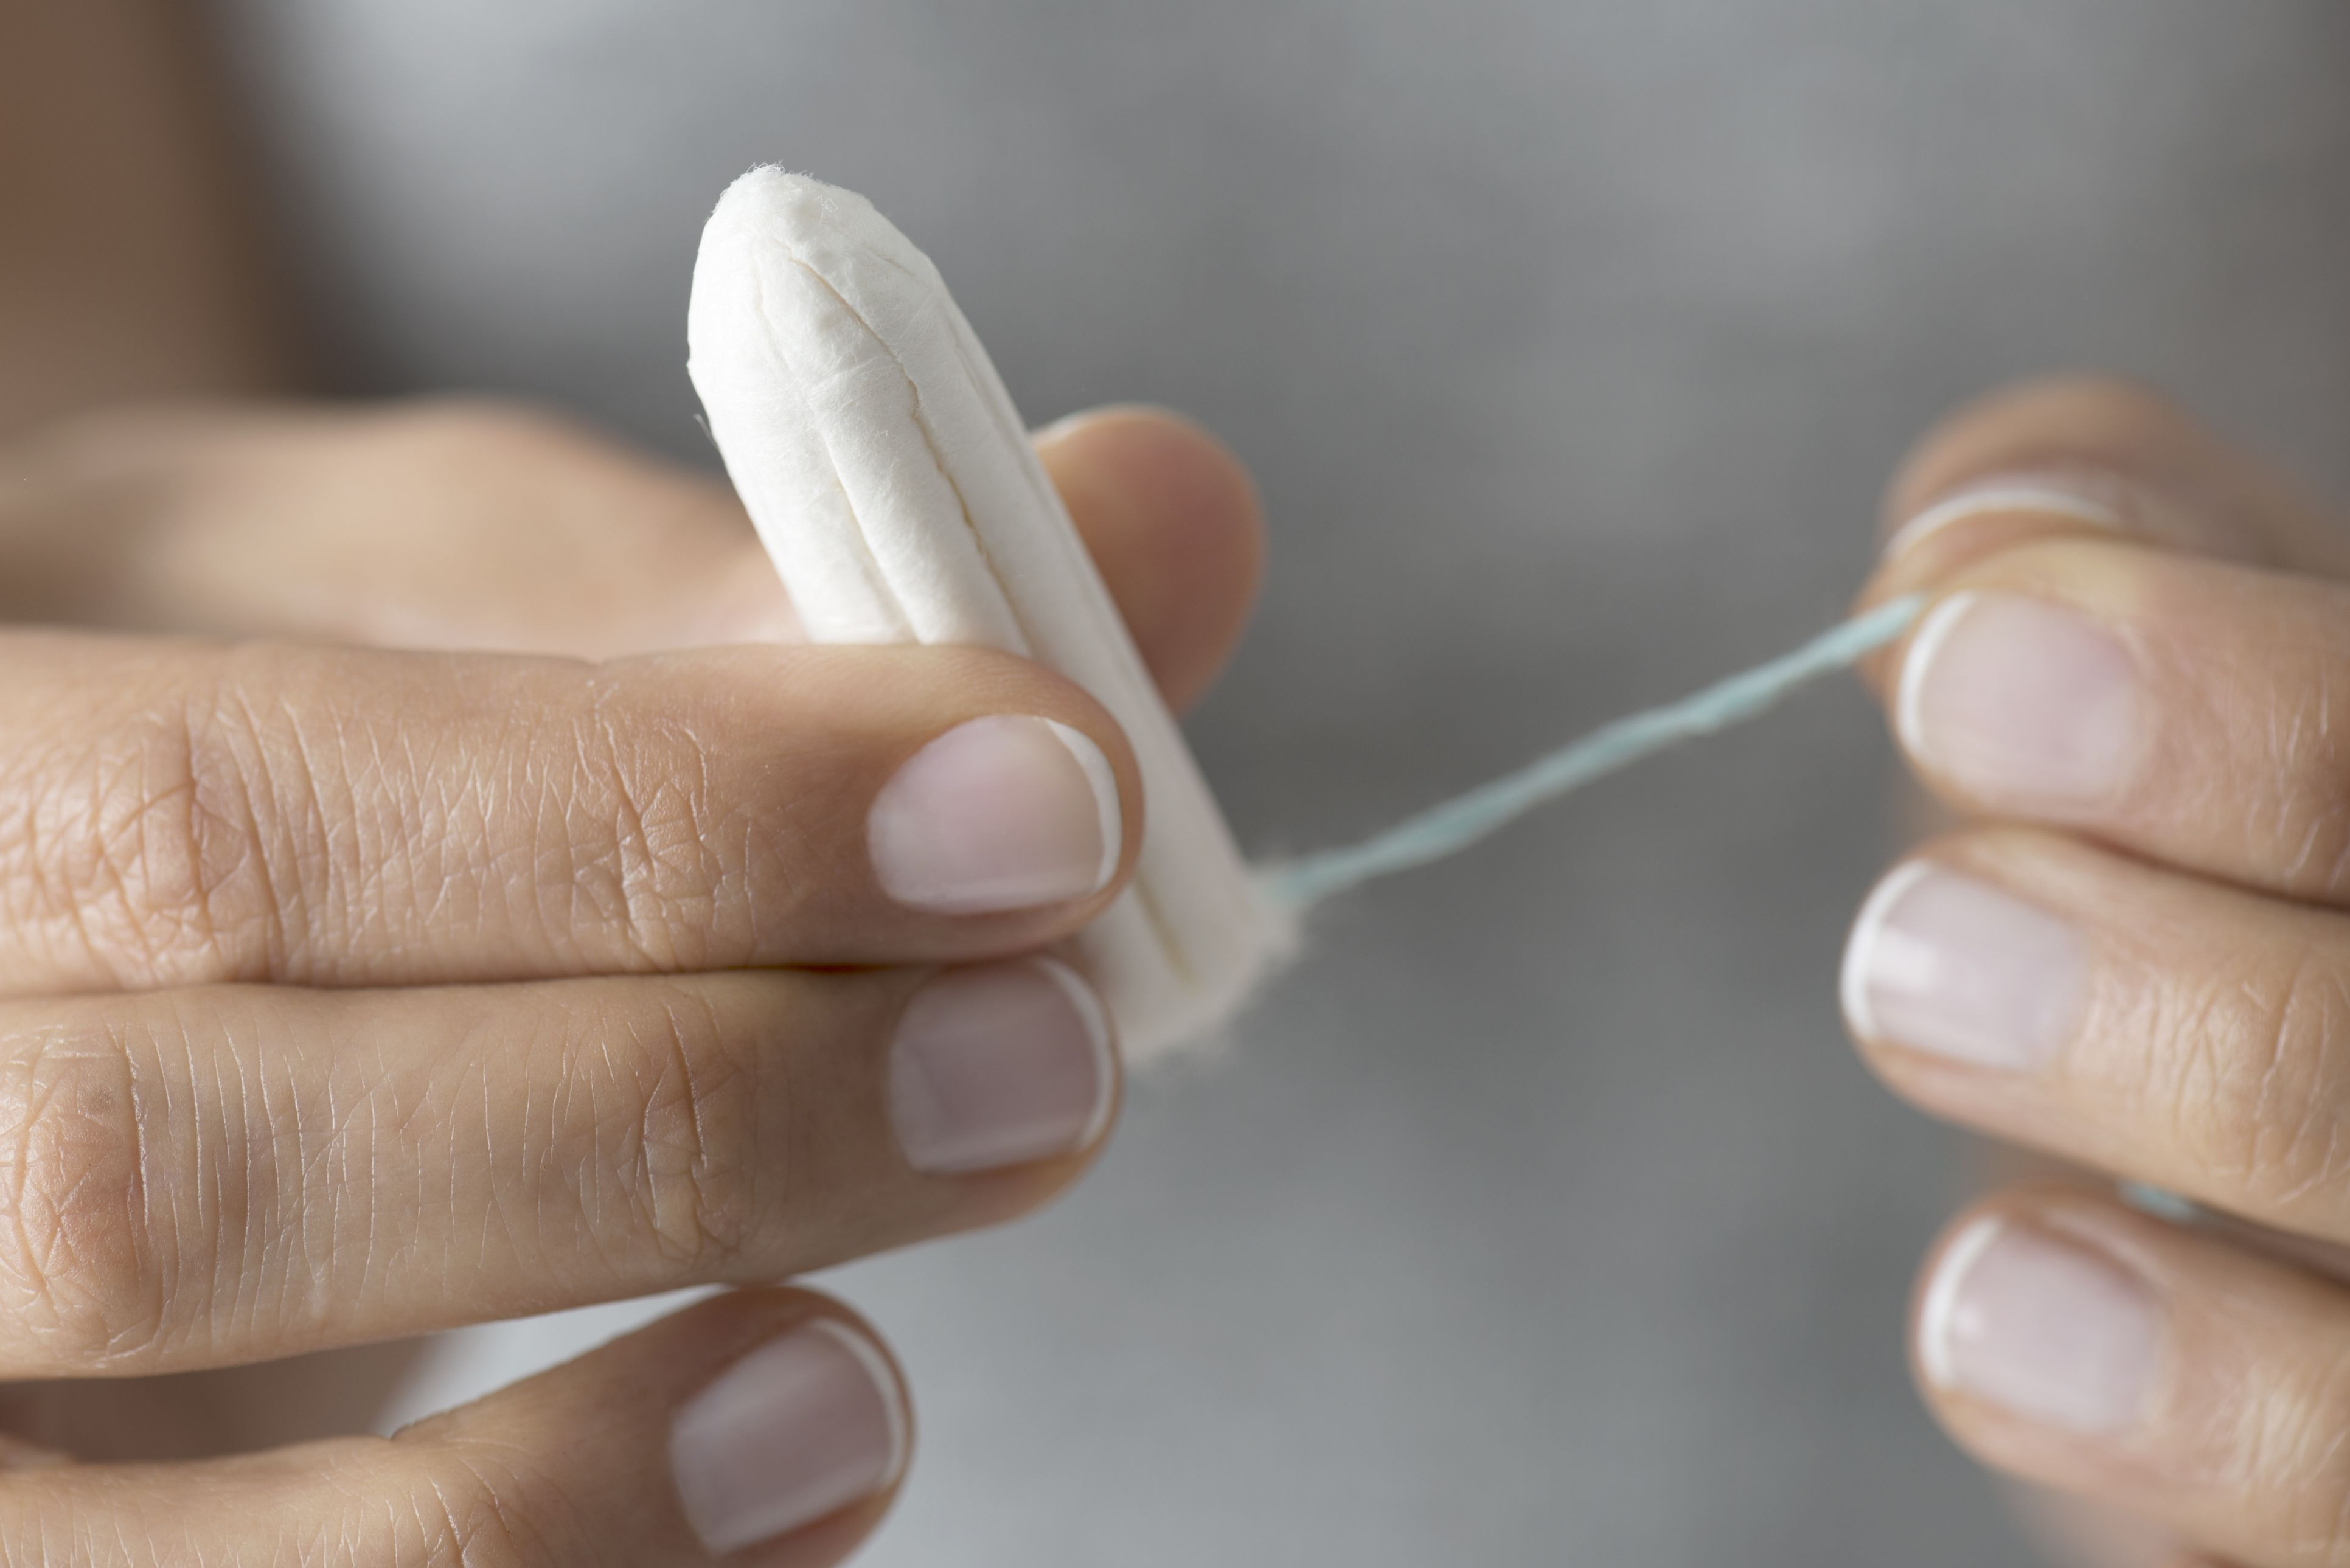 Can You Flush Tampons Down The Toilet? How To Get Rid Of Tampons